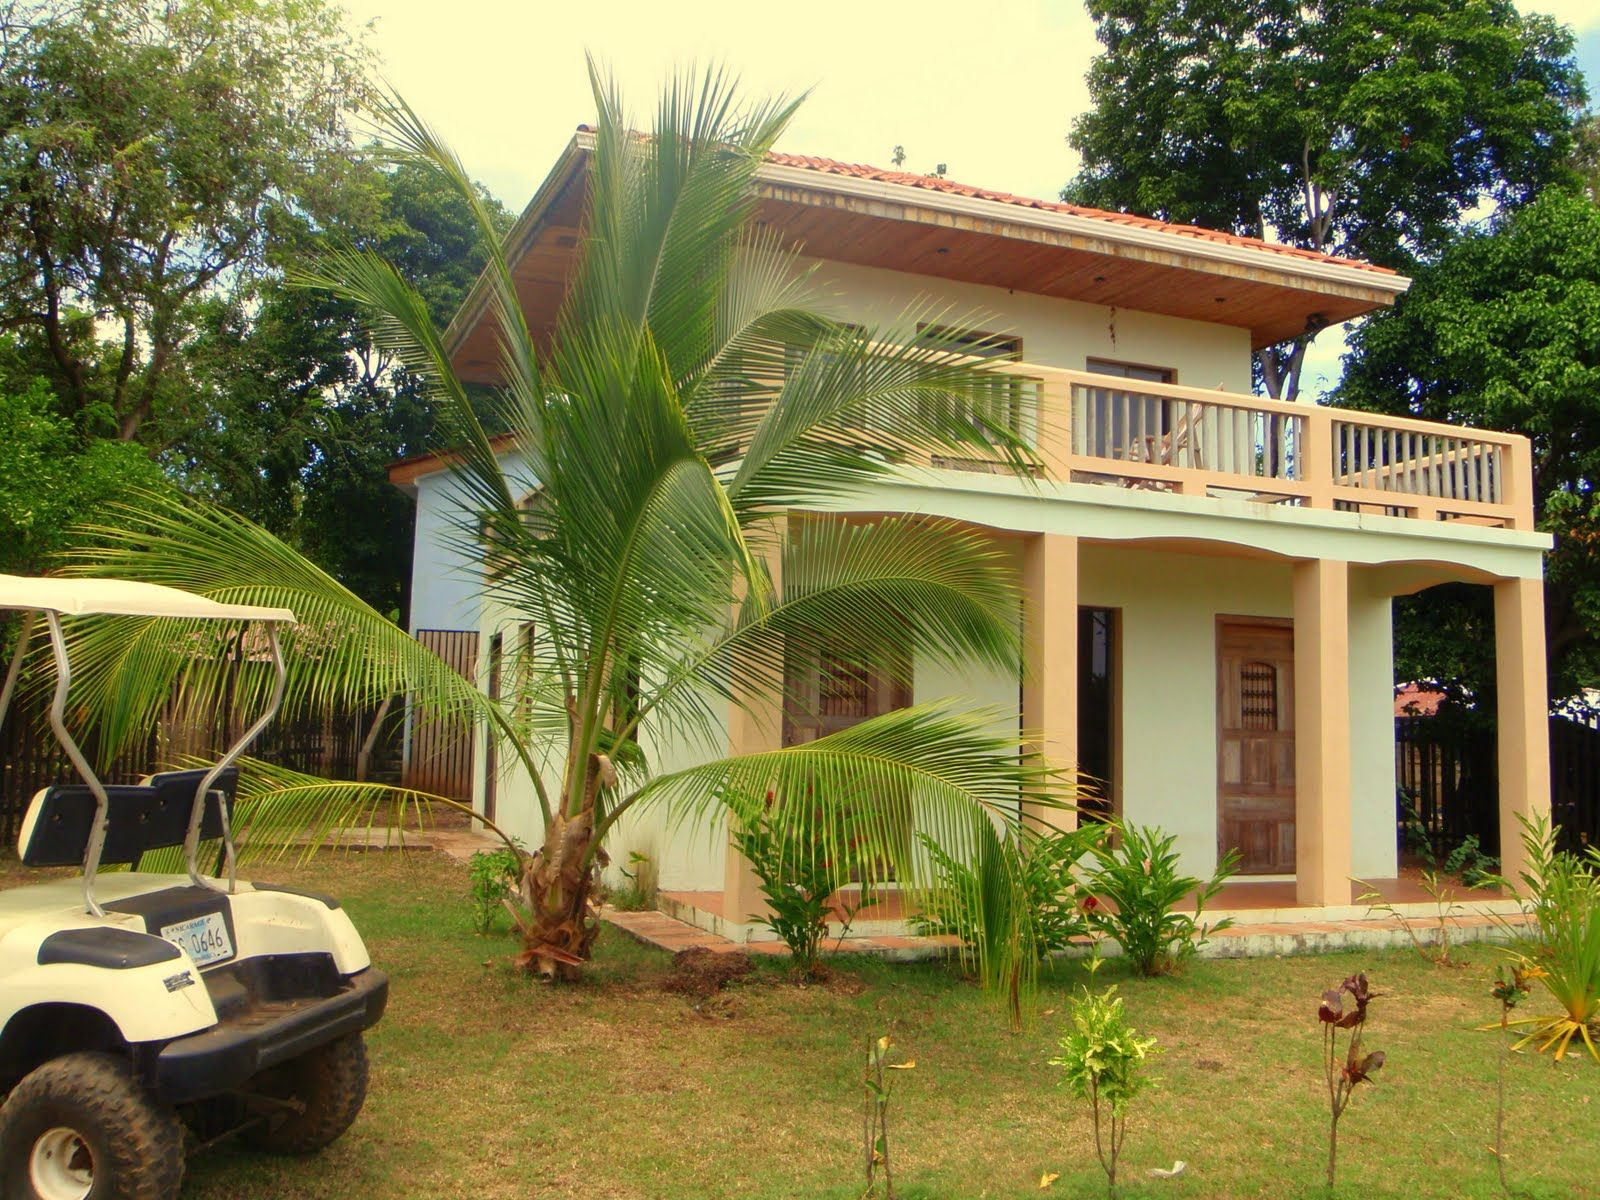 Good Beach Houses For Sale In Nicaragua Part - 11: Nicaragua Real Estate Leon - Colonial Homes And Beachfront Property In  Nicaragua, Central America | I Want To Move Here! And Here... And.